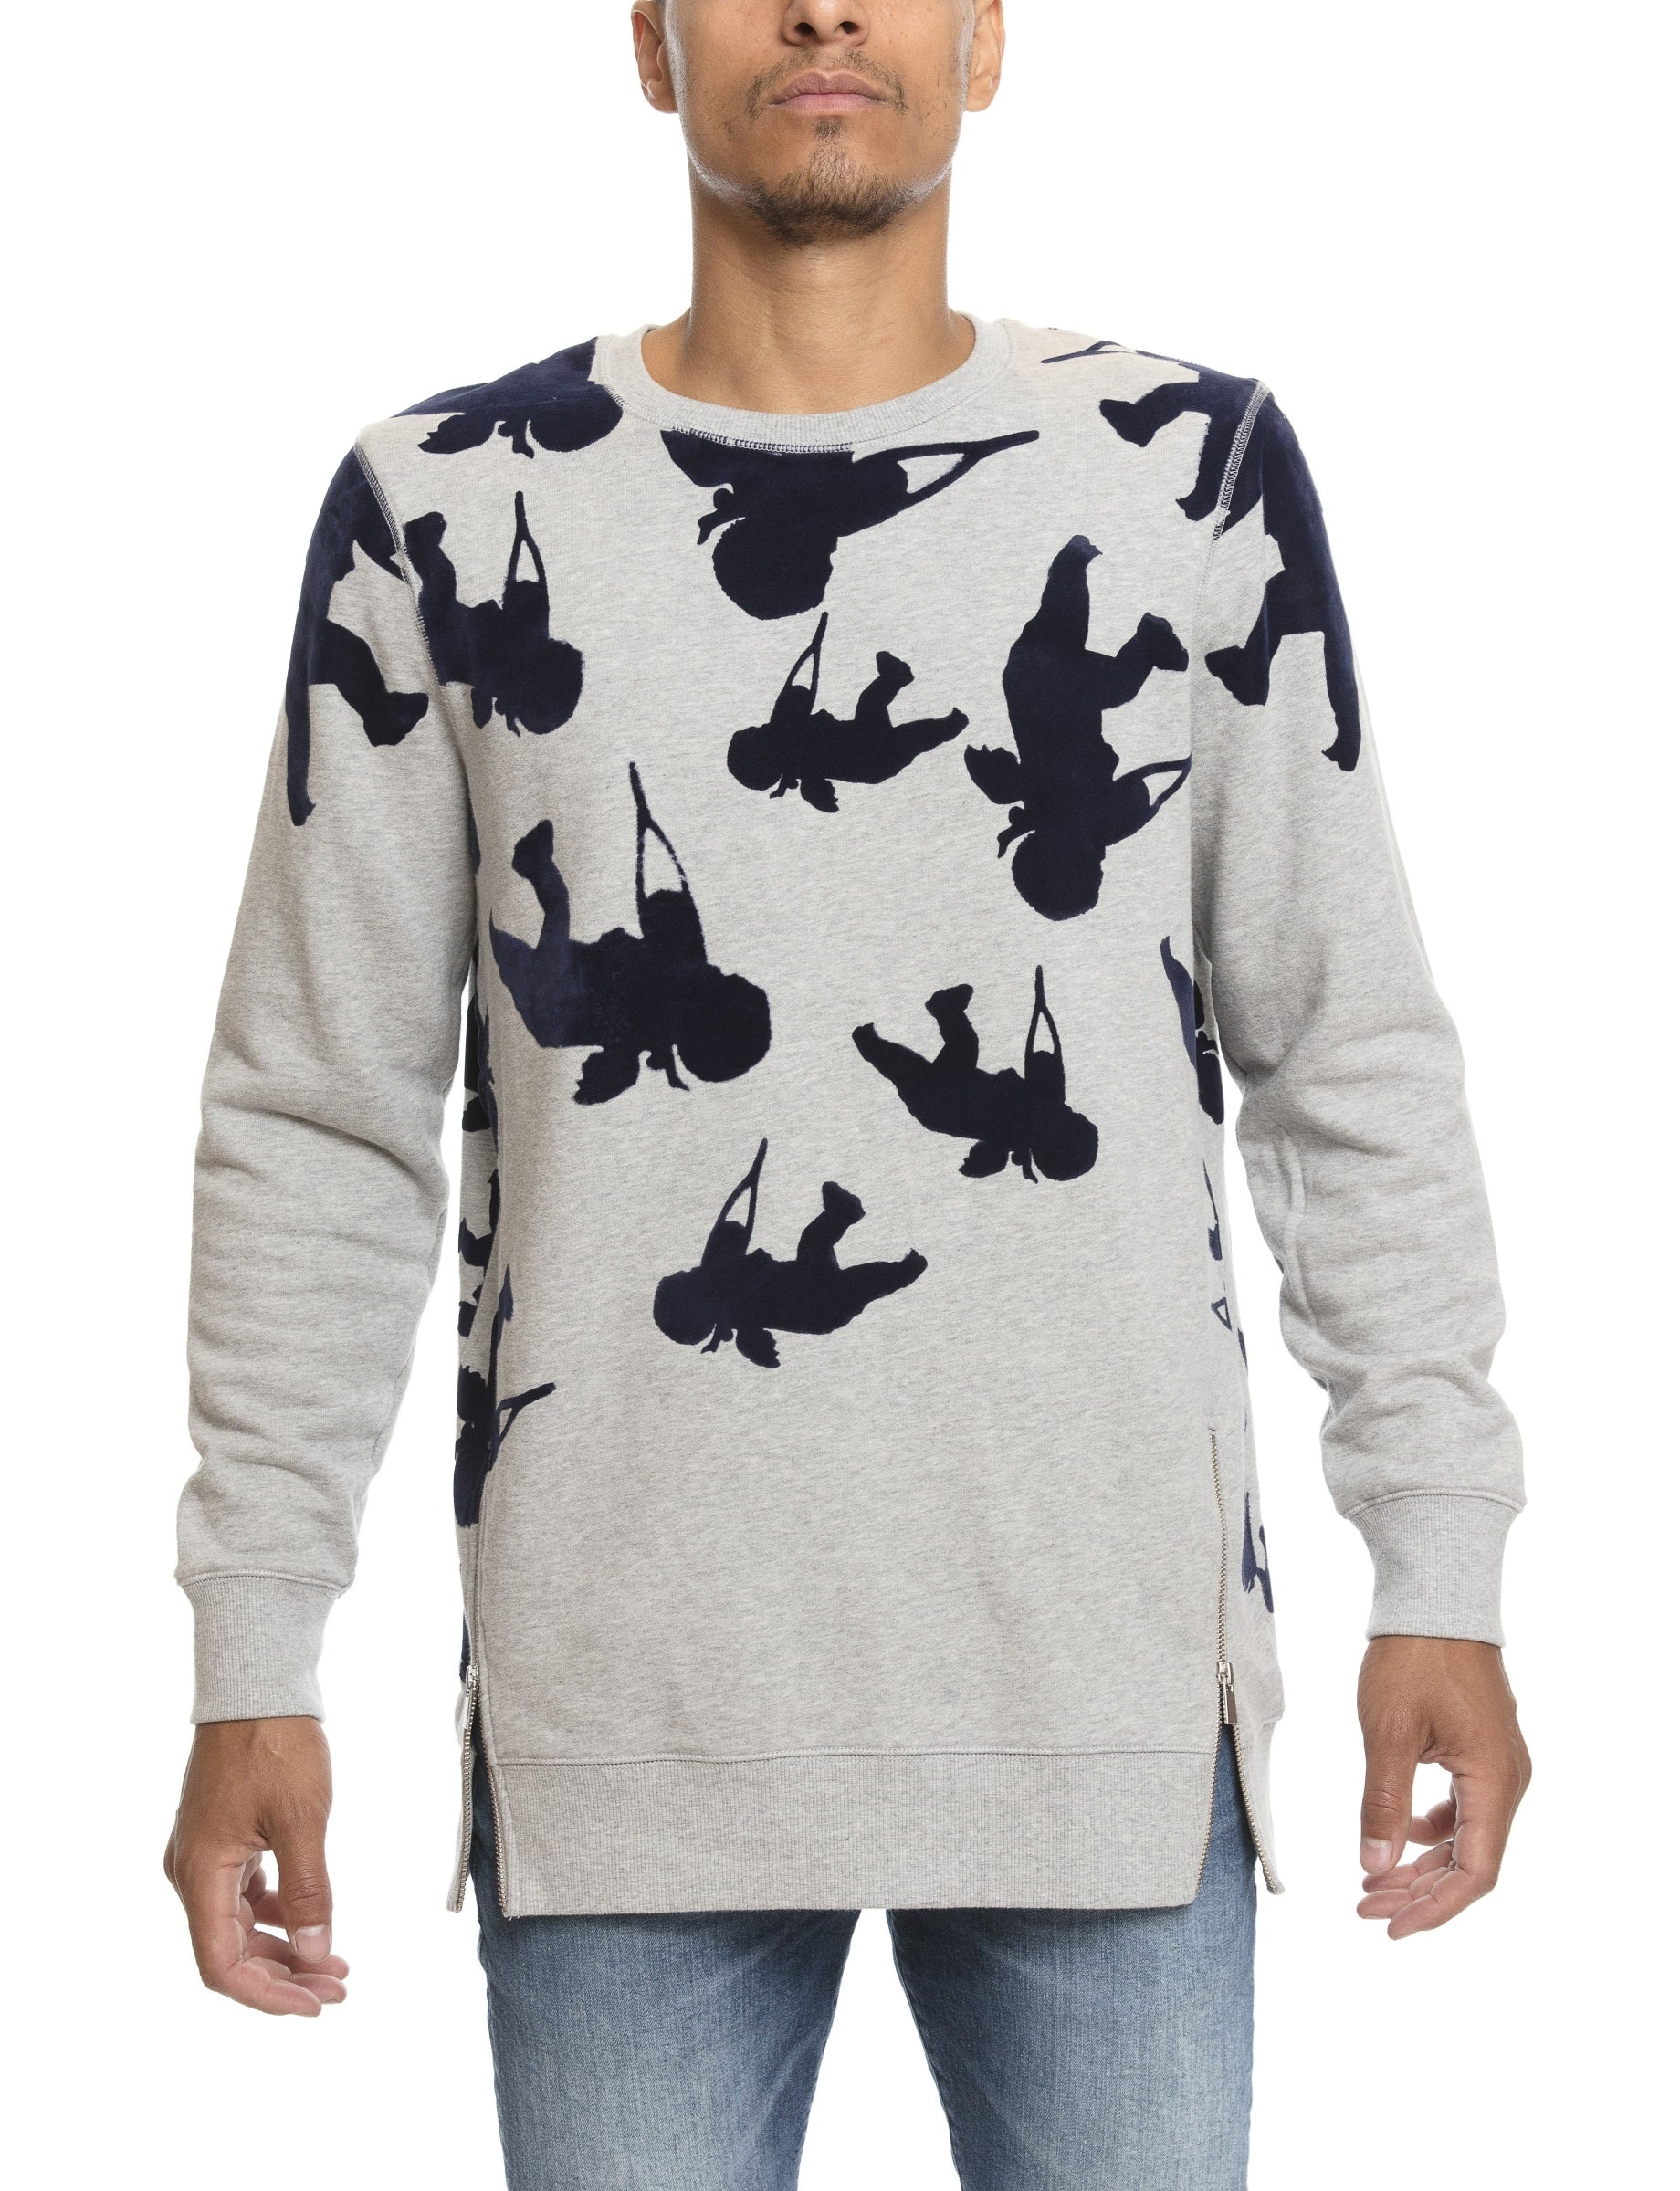 Prps | Allover Cherub Print Pullover - Hoodies & Sweaters